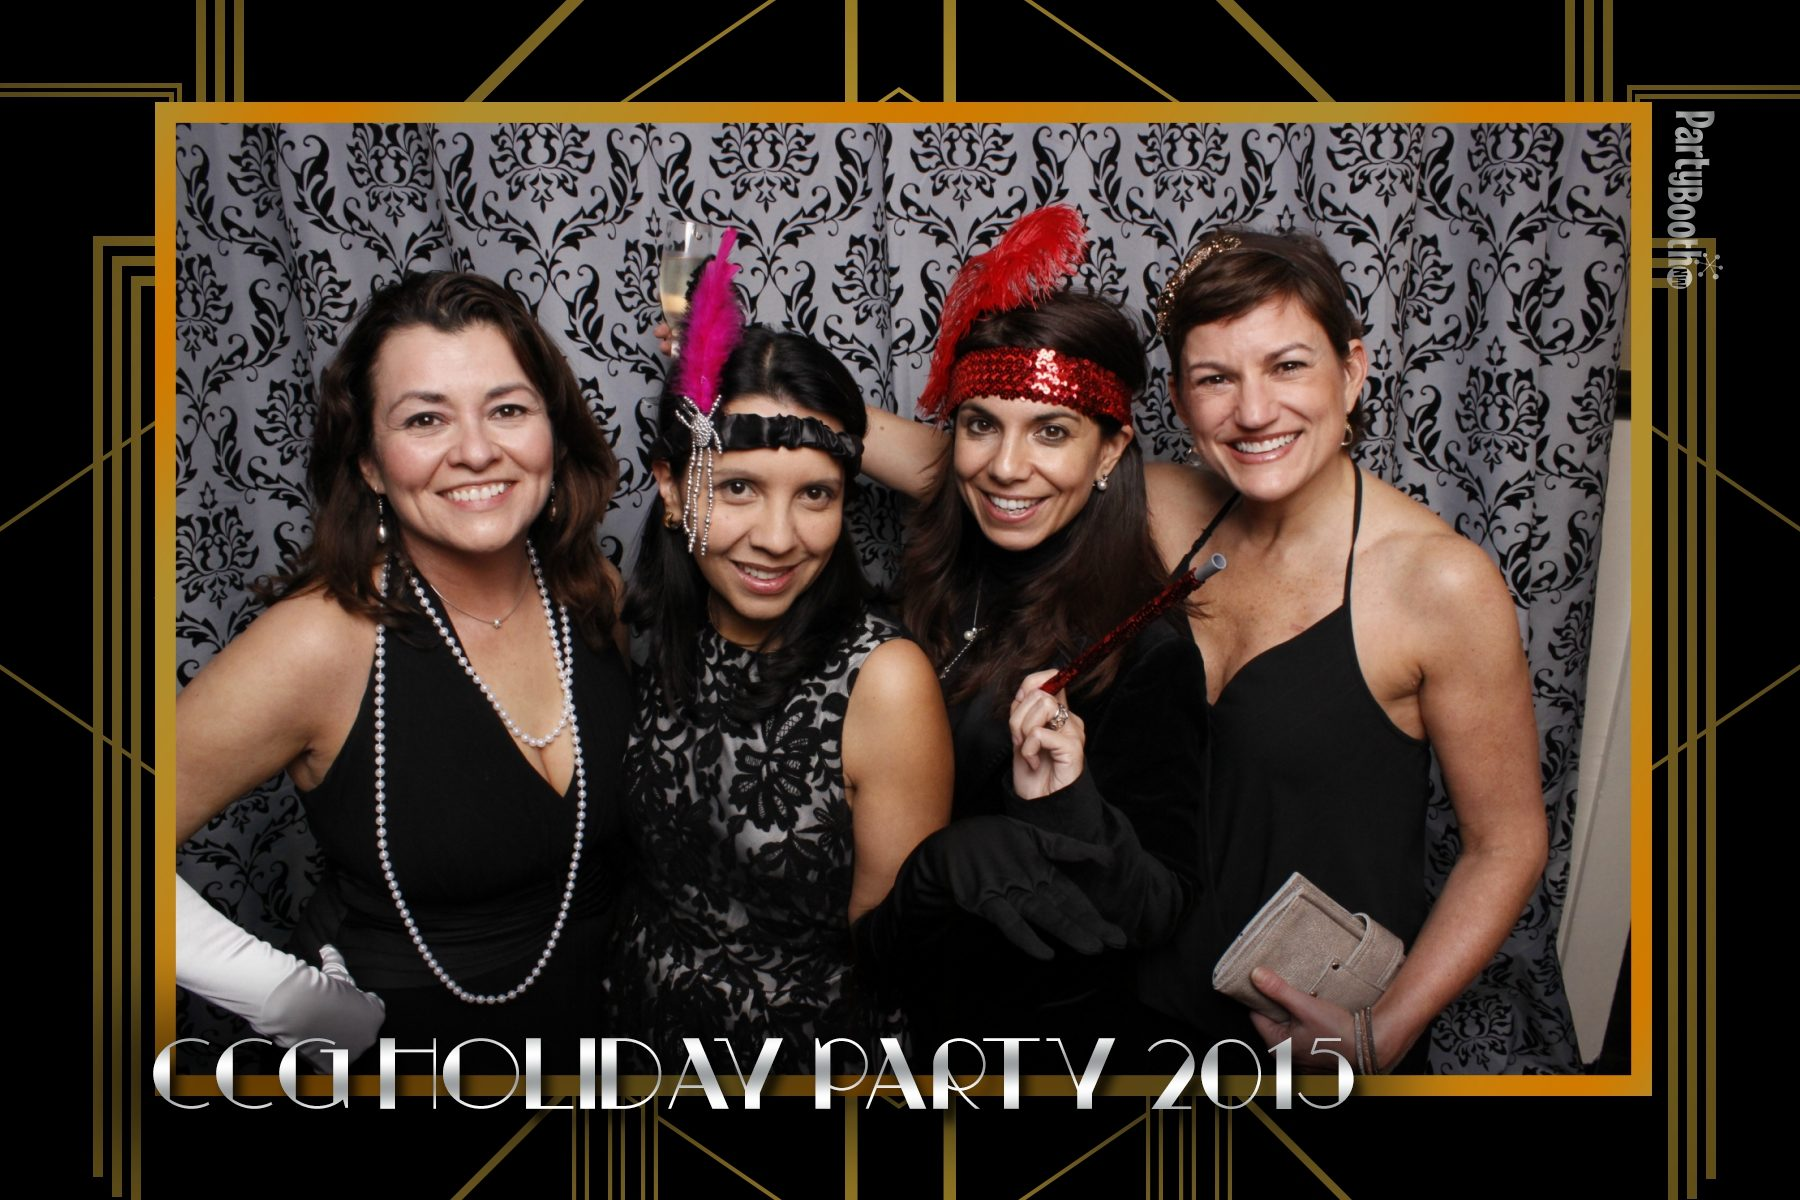 Dressed to the nines in the 1920's best, CCG along with their friends and family parties aboard the MV Skansonia - a retired Washington State Ferry docked at the north end of Seattle's Lake Union. The costumes, the live music, the artists, the food... It was a night to remember! Seattle Photo Booth © 2015 Ari Shapiro - PartyBoothNW.com